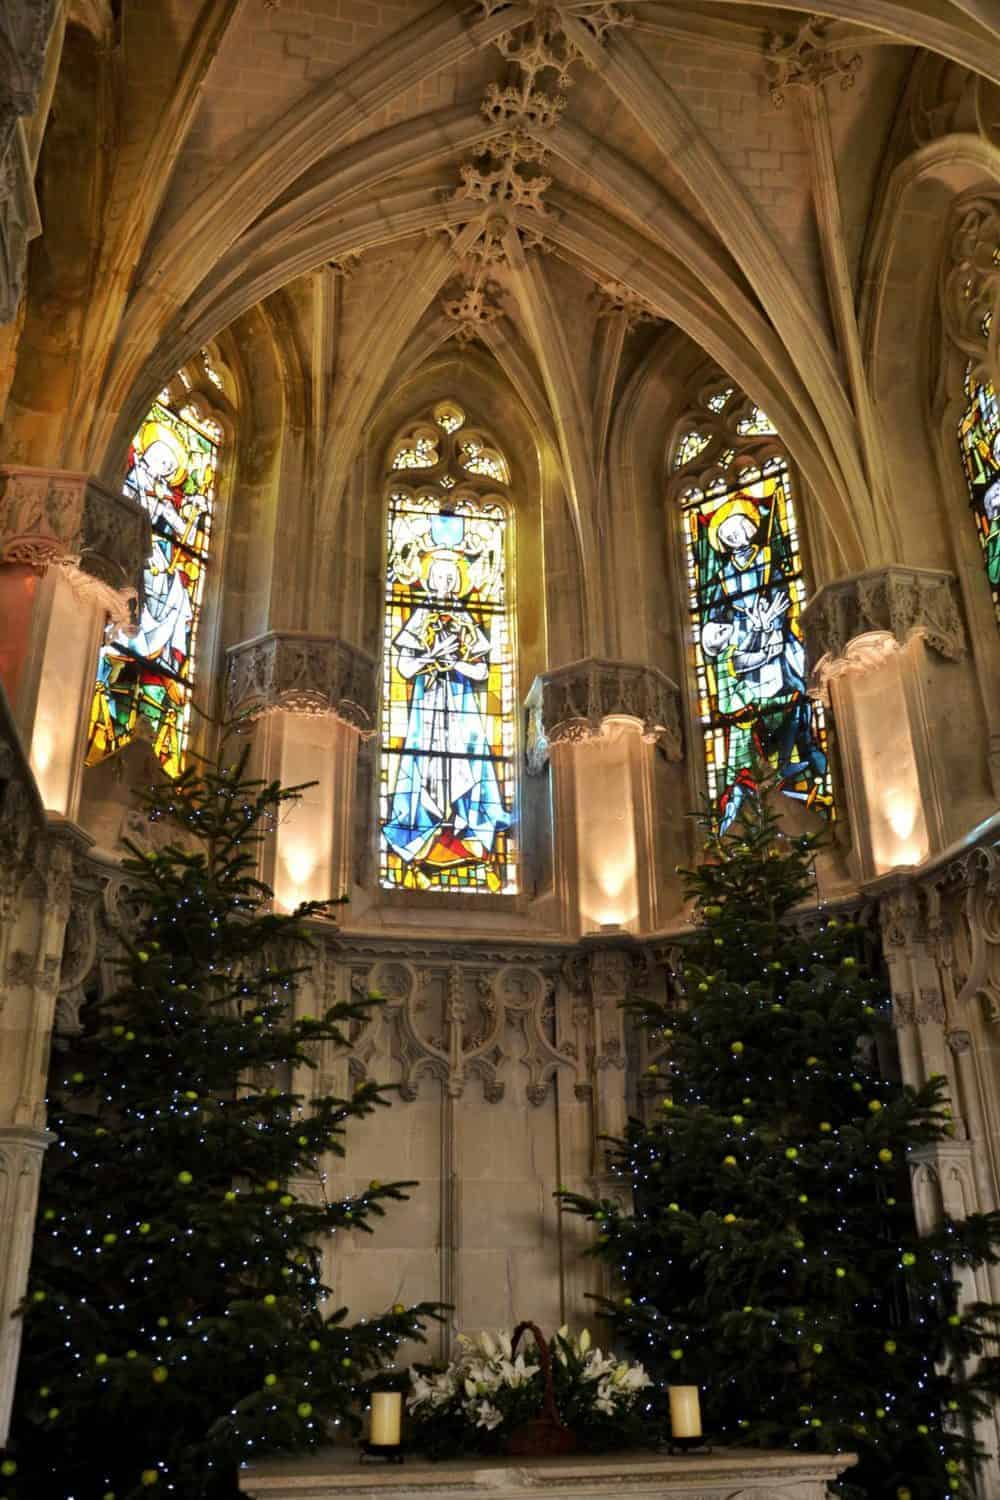 Inside the Leonardo Da Vinci grave in Chateaux Amboise with christmas trees